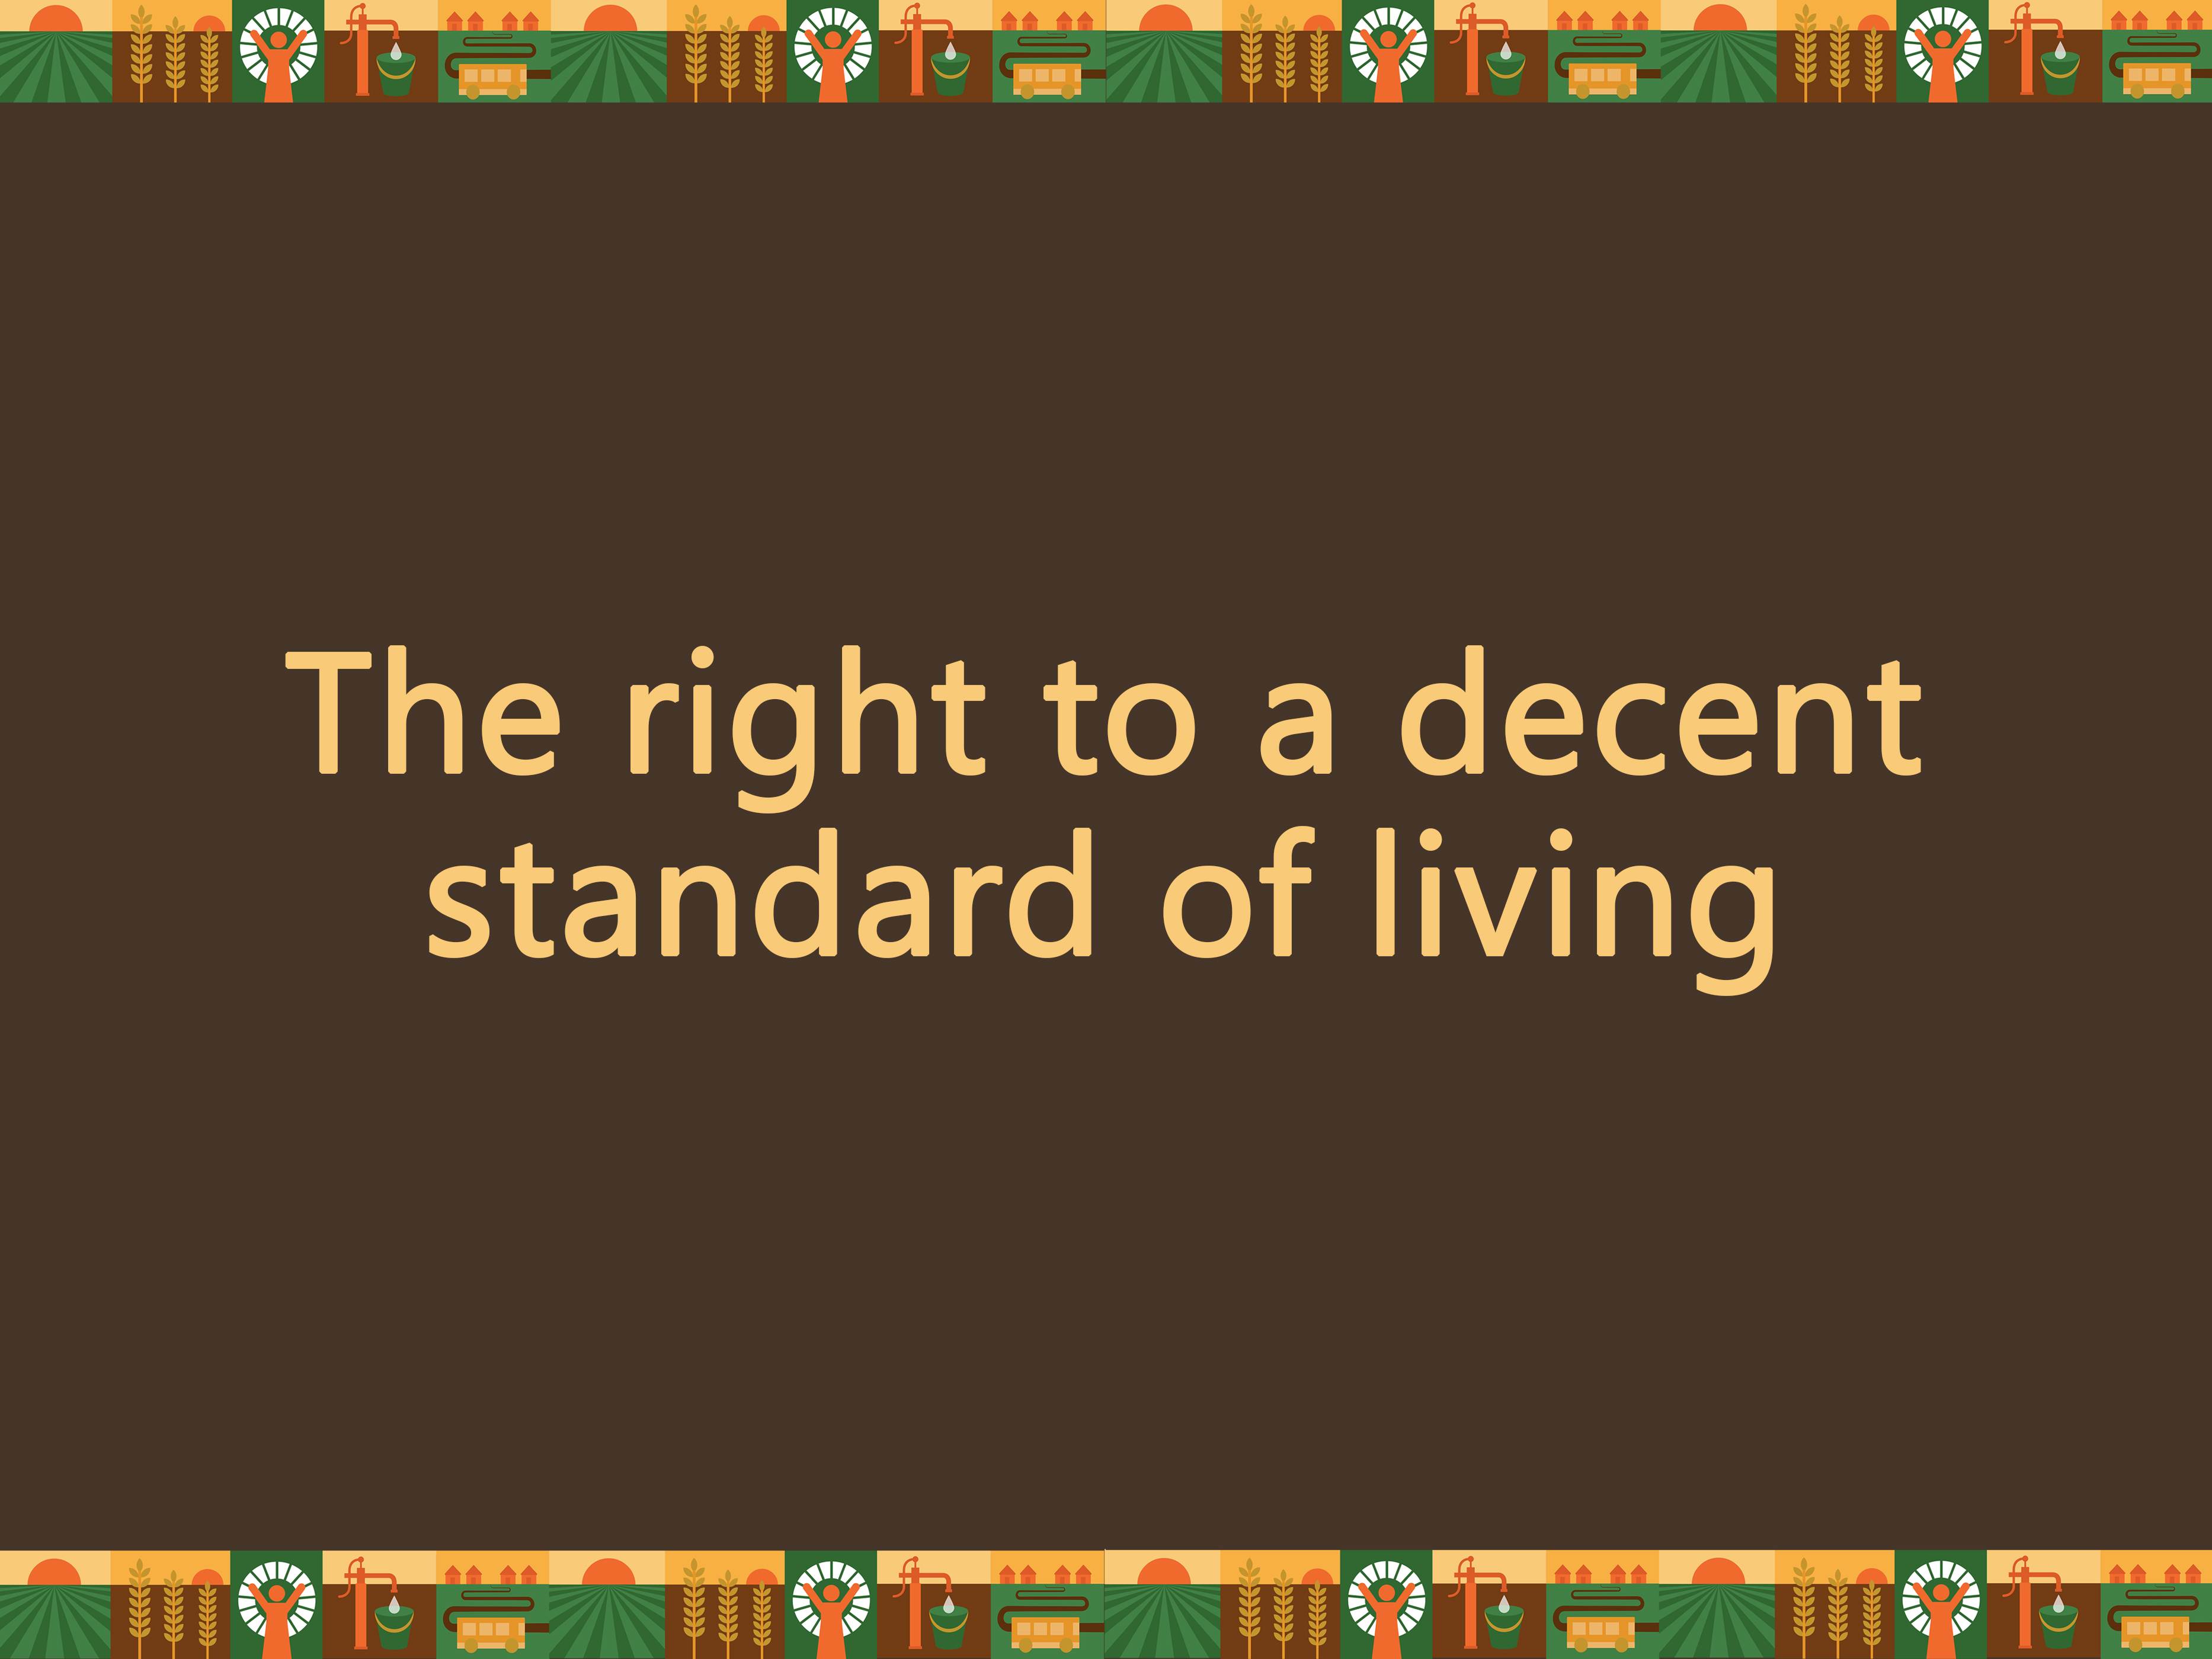 The right to a decent standard of living